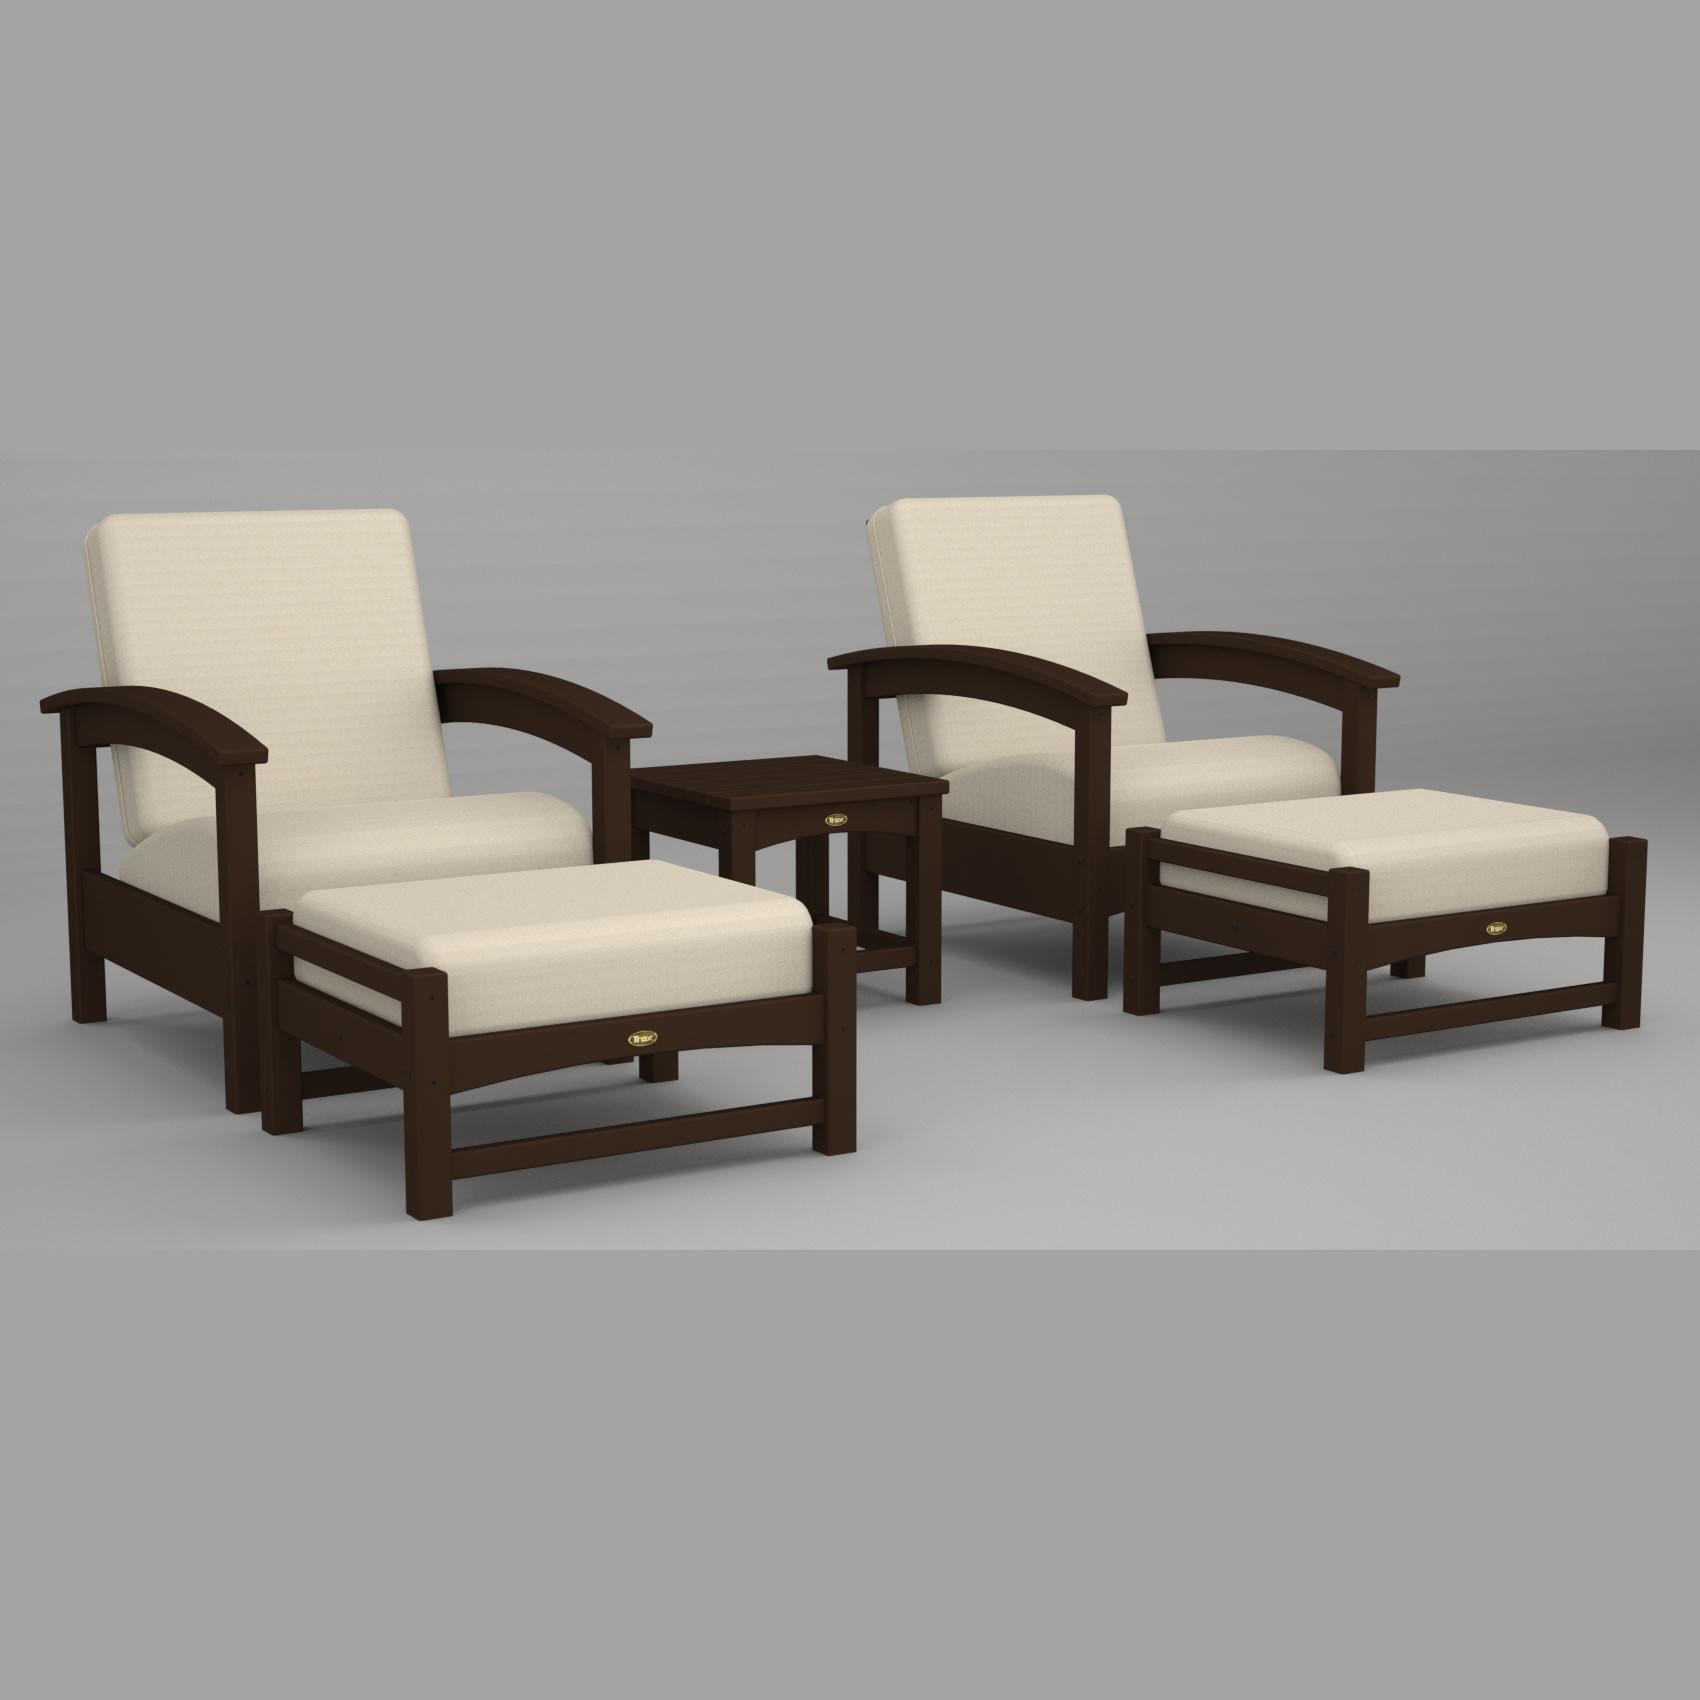 Trexr Outdoor Furniture Rockport 5 Pc Deep Seating Set